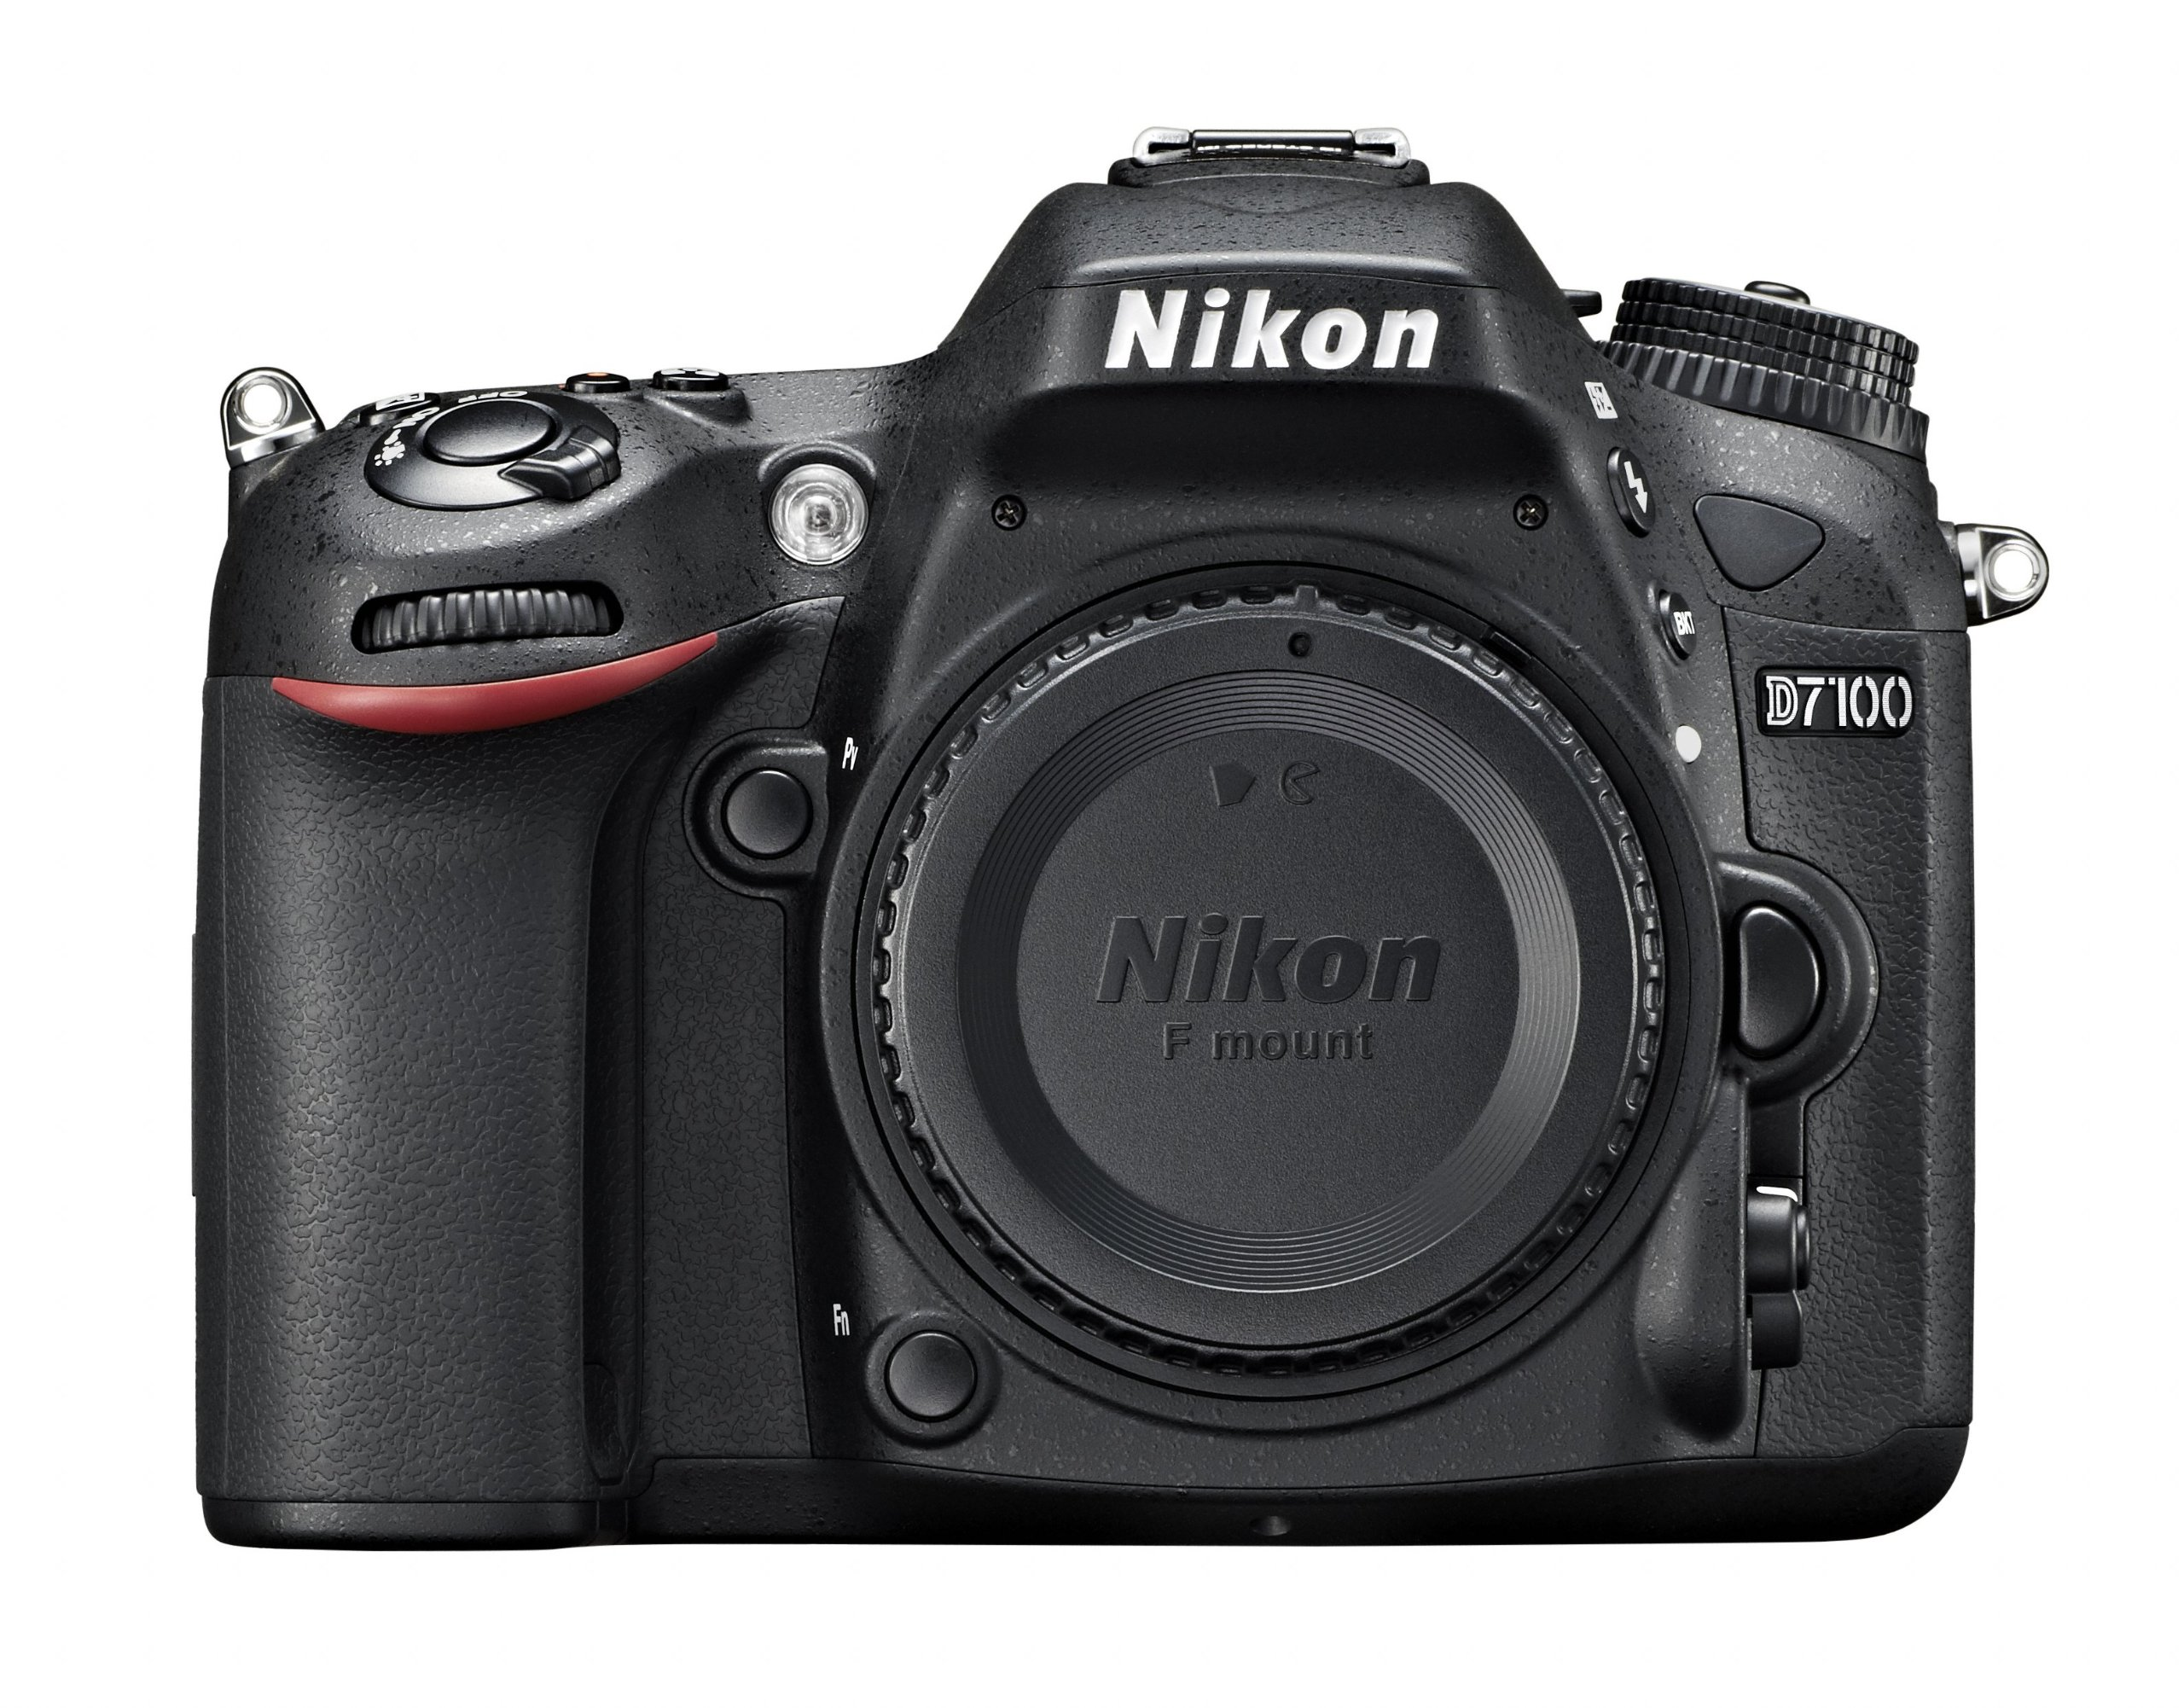 Nikon D7100 Body Fotocamera Digitale Reflex 24.1 Megapixel, Display 3.2 Pollici [Versione EU] product image